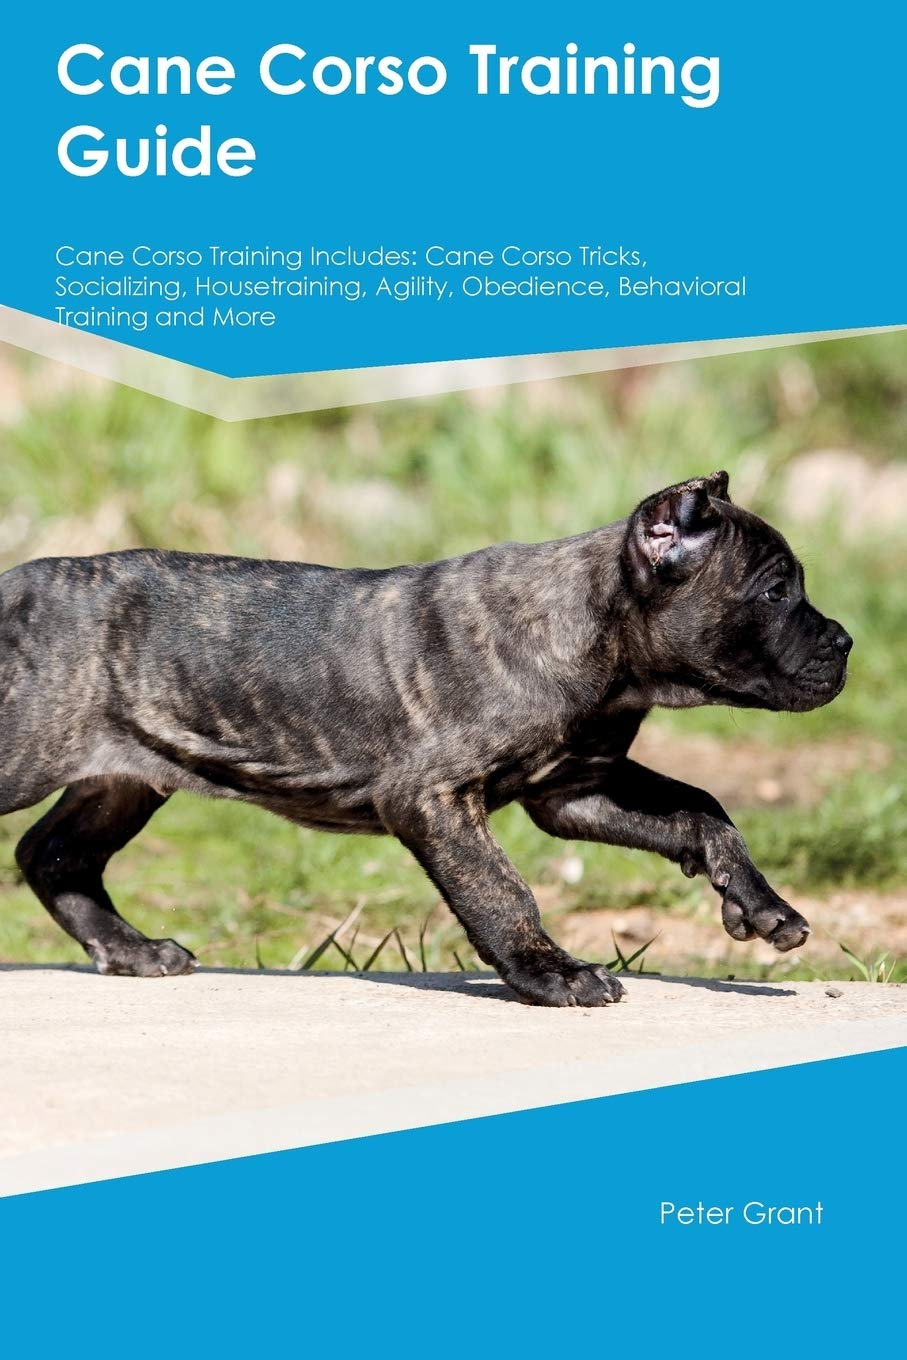 Cane-Corso-Training-Guide-Cane-Corso-Training-Includes-Cane-Corso-Tricks-Socializing-Housetraining-Agility-Obedience-Behavioral-Training-and-More